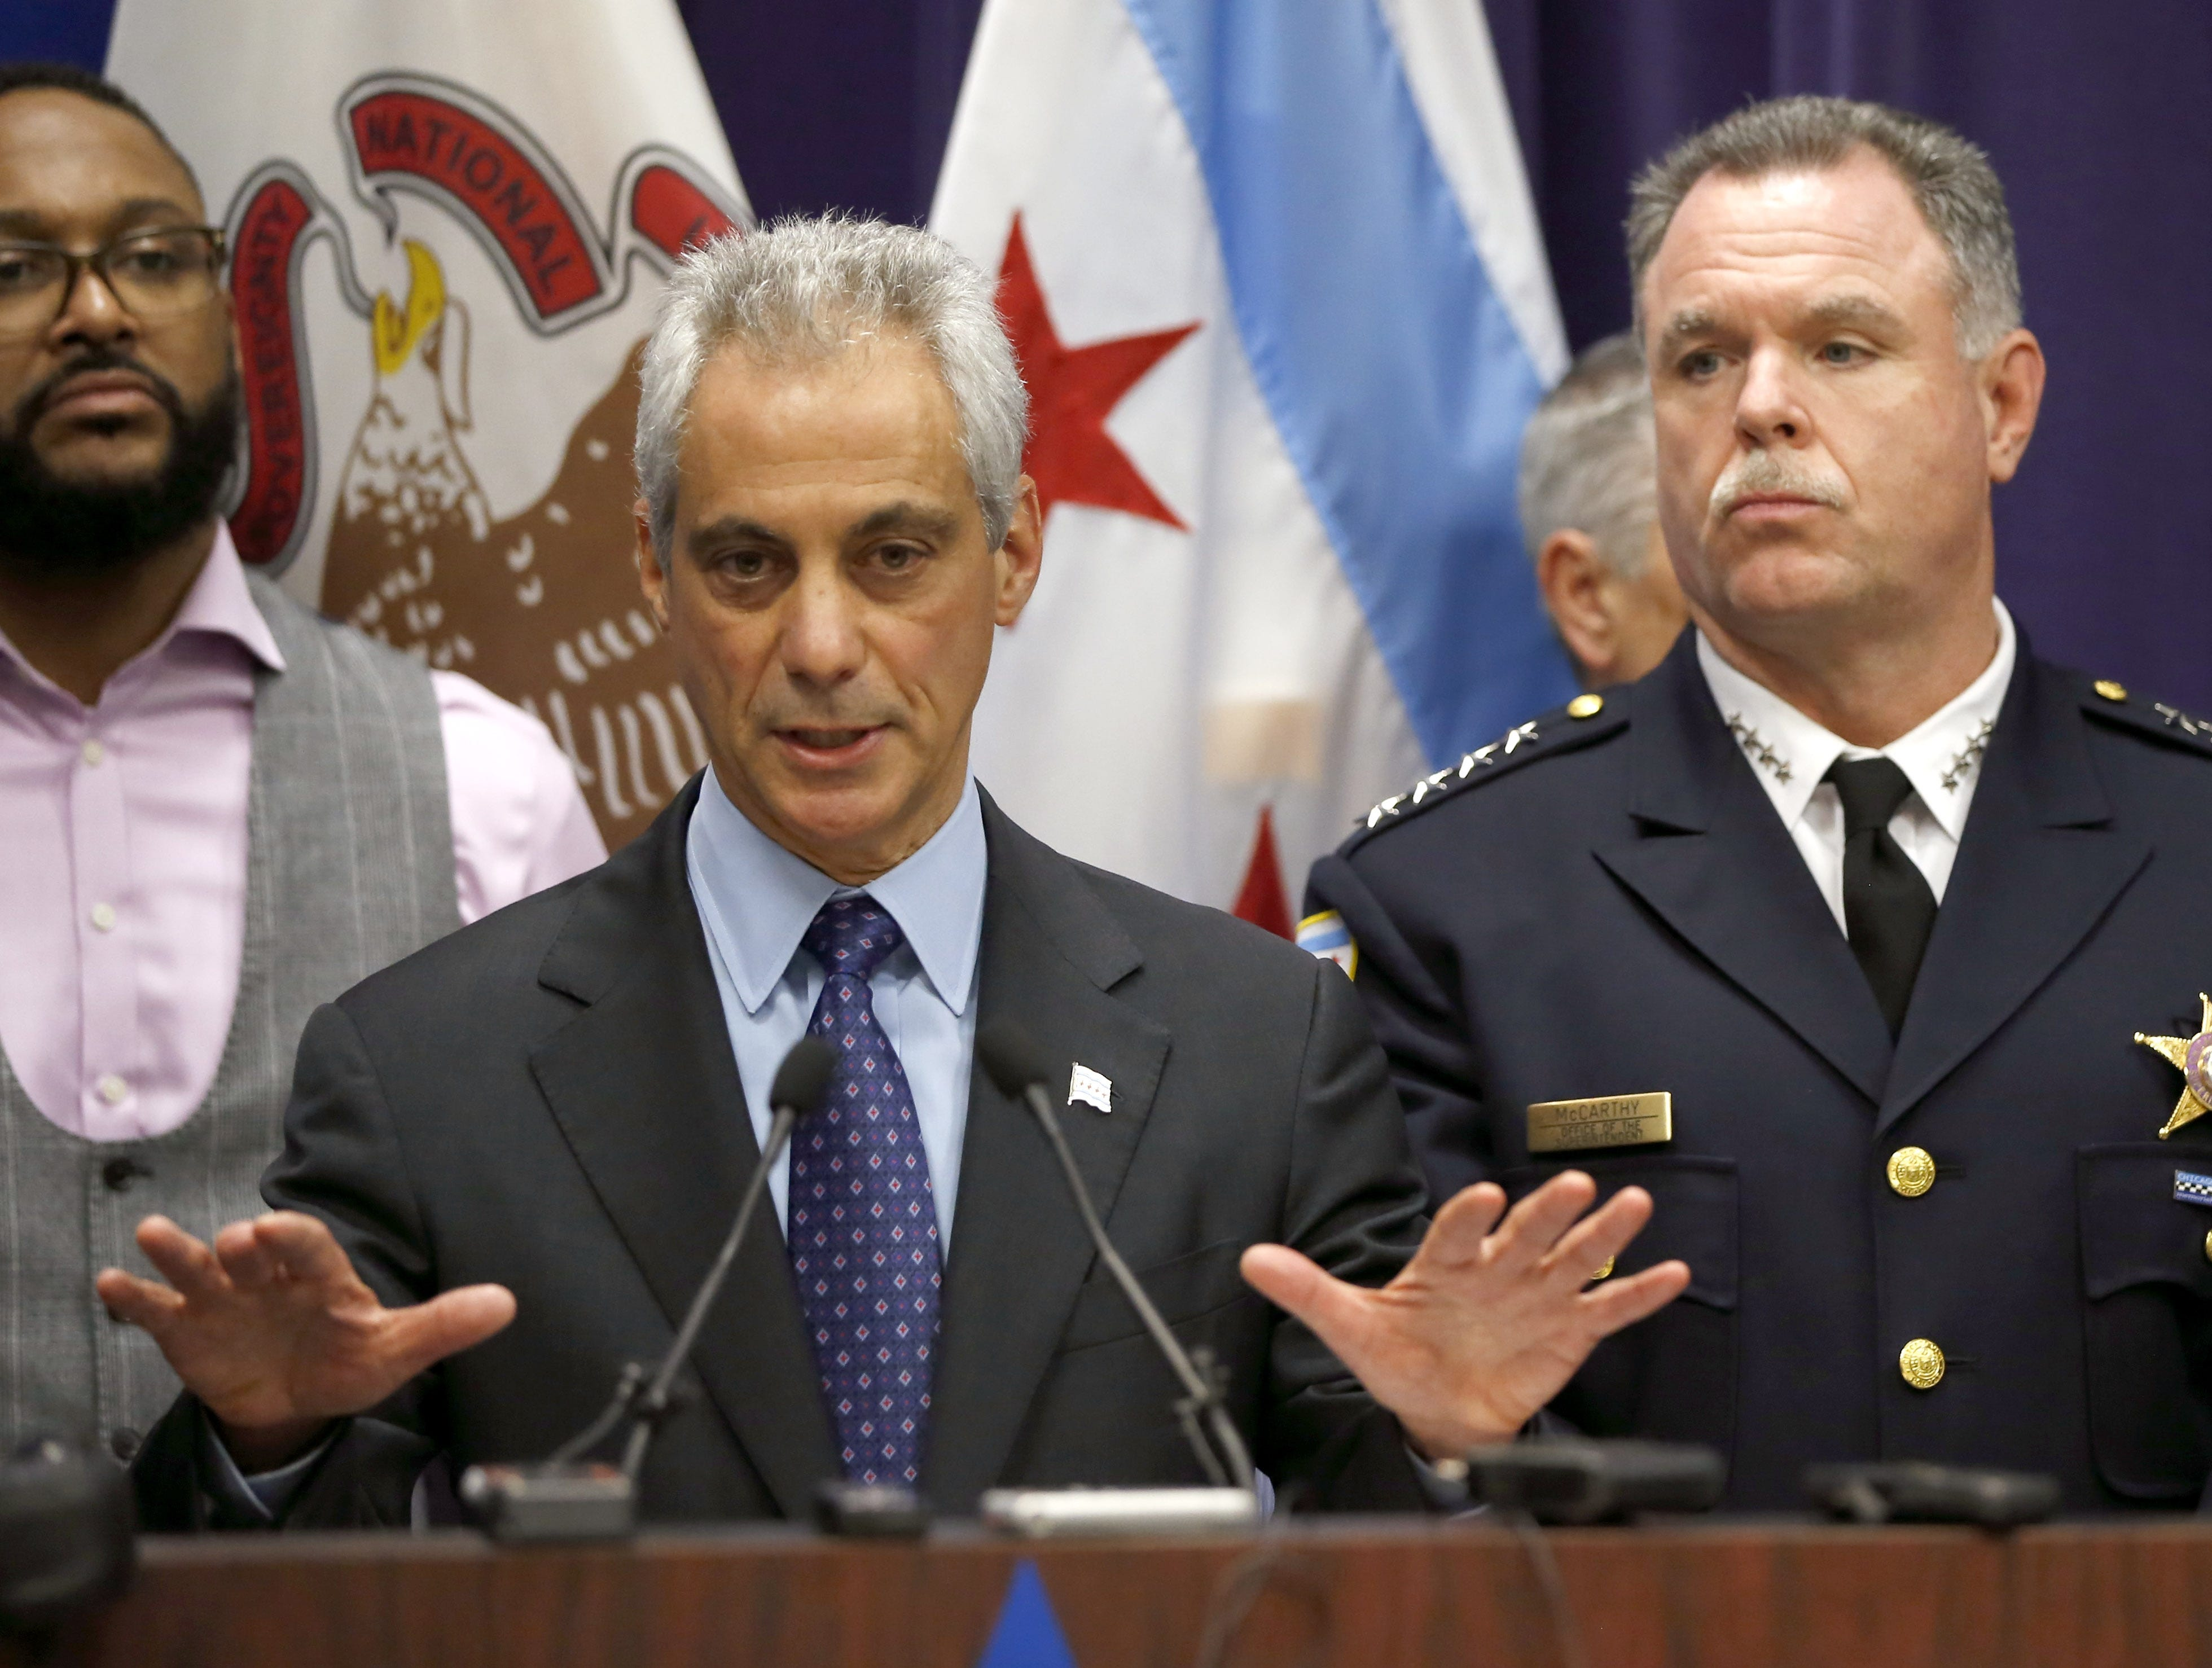 Chicago Mayor Rahm Emanuel, left, and Police Superintendent Garry McCarthy appear at a news conference, Tuesday, Nov. 24, 2015, in Chicago, announcing first-degree murder charges against police officer Jason Van Dyke in the Oct. 24, death of 17-year-old Laquan McDonald. The city then released the dash-cam video of the shooting to media outlets after the news conference.